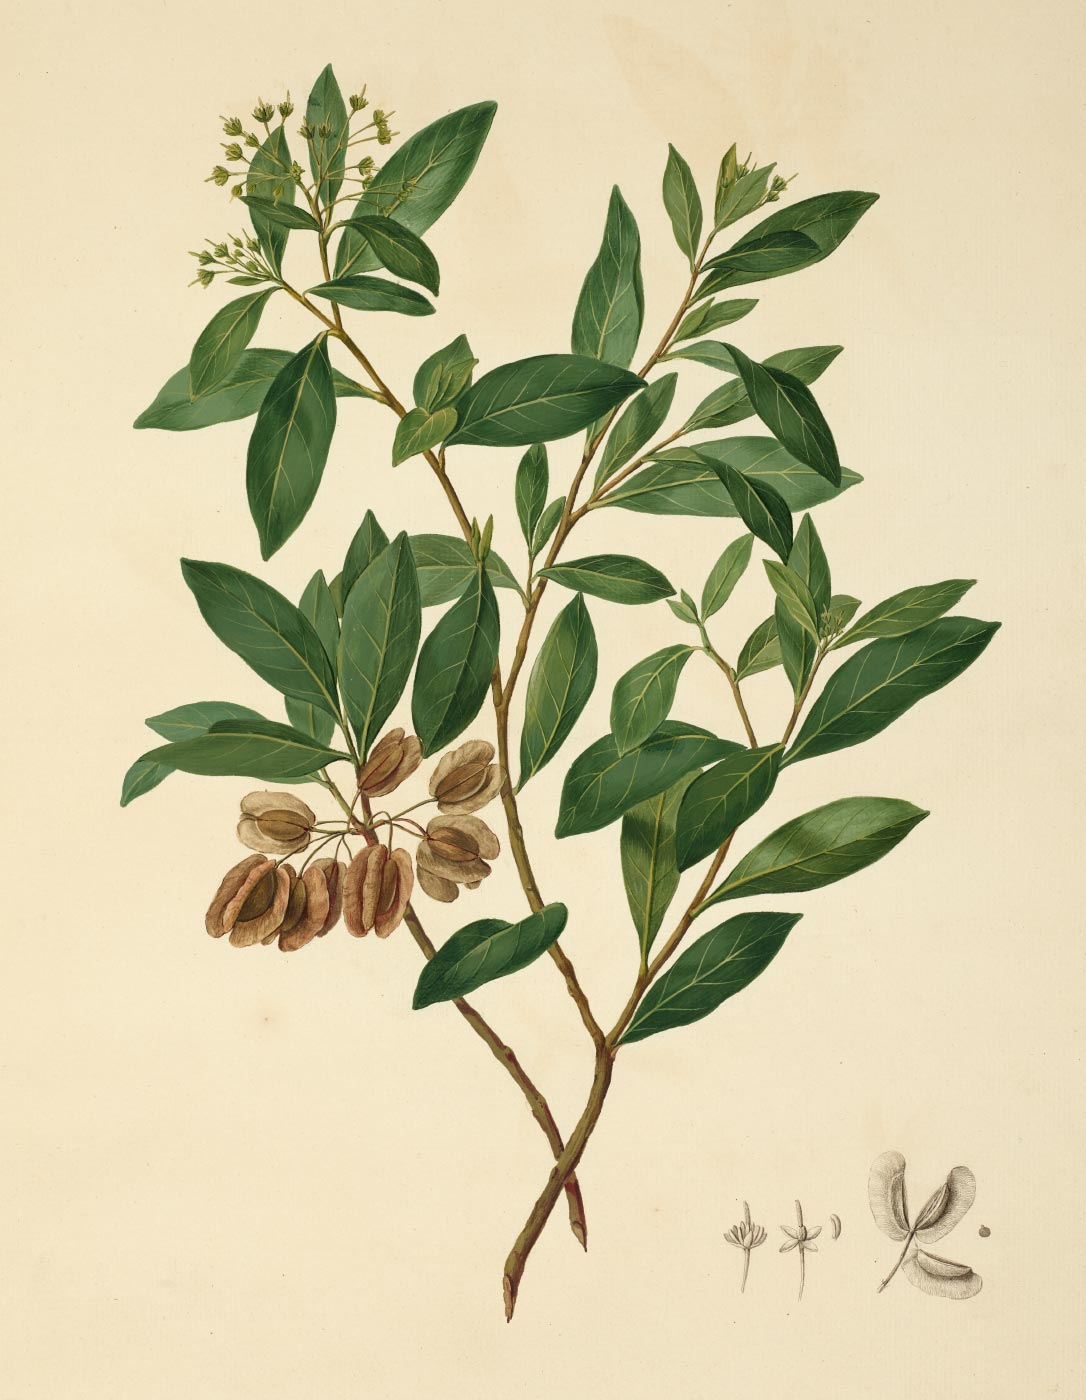 Watercolour of a plant with narrow green leaves and brown seed pods. - click to view larger image